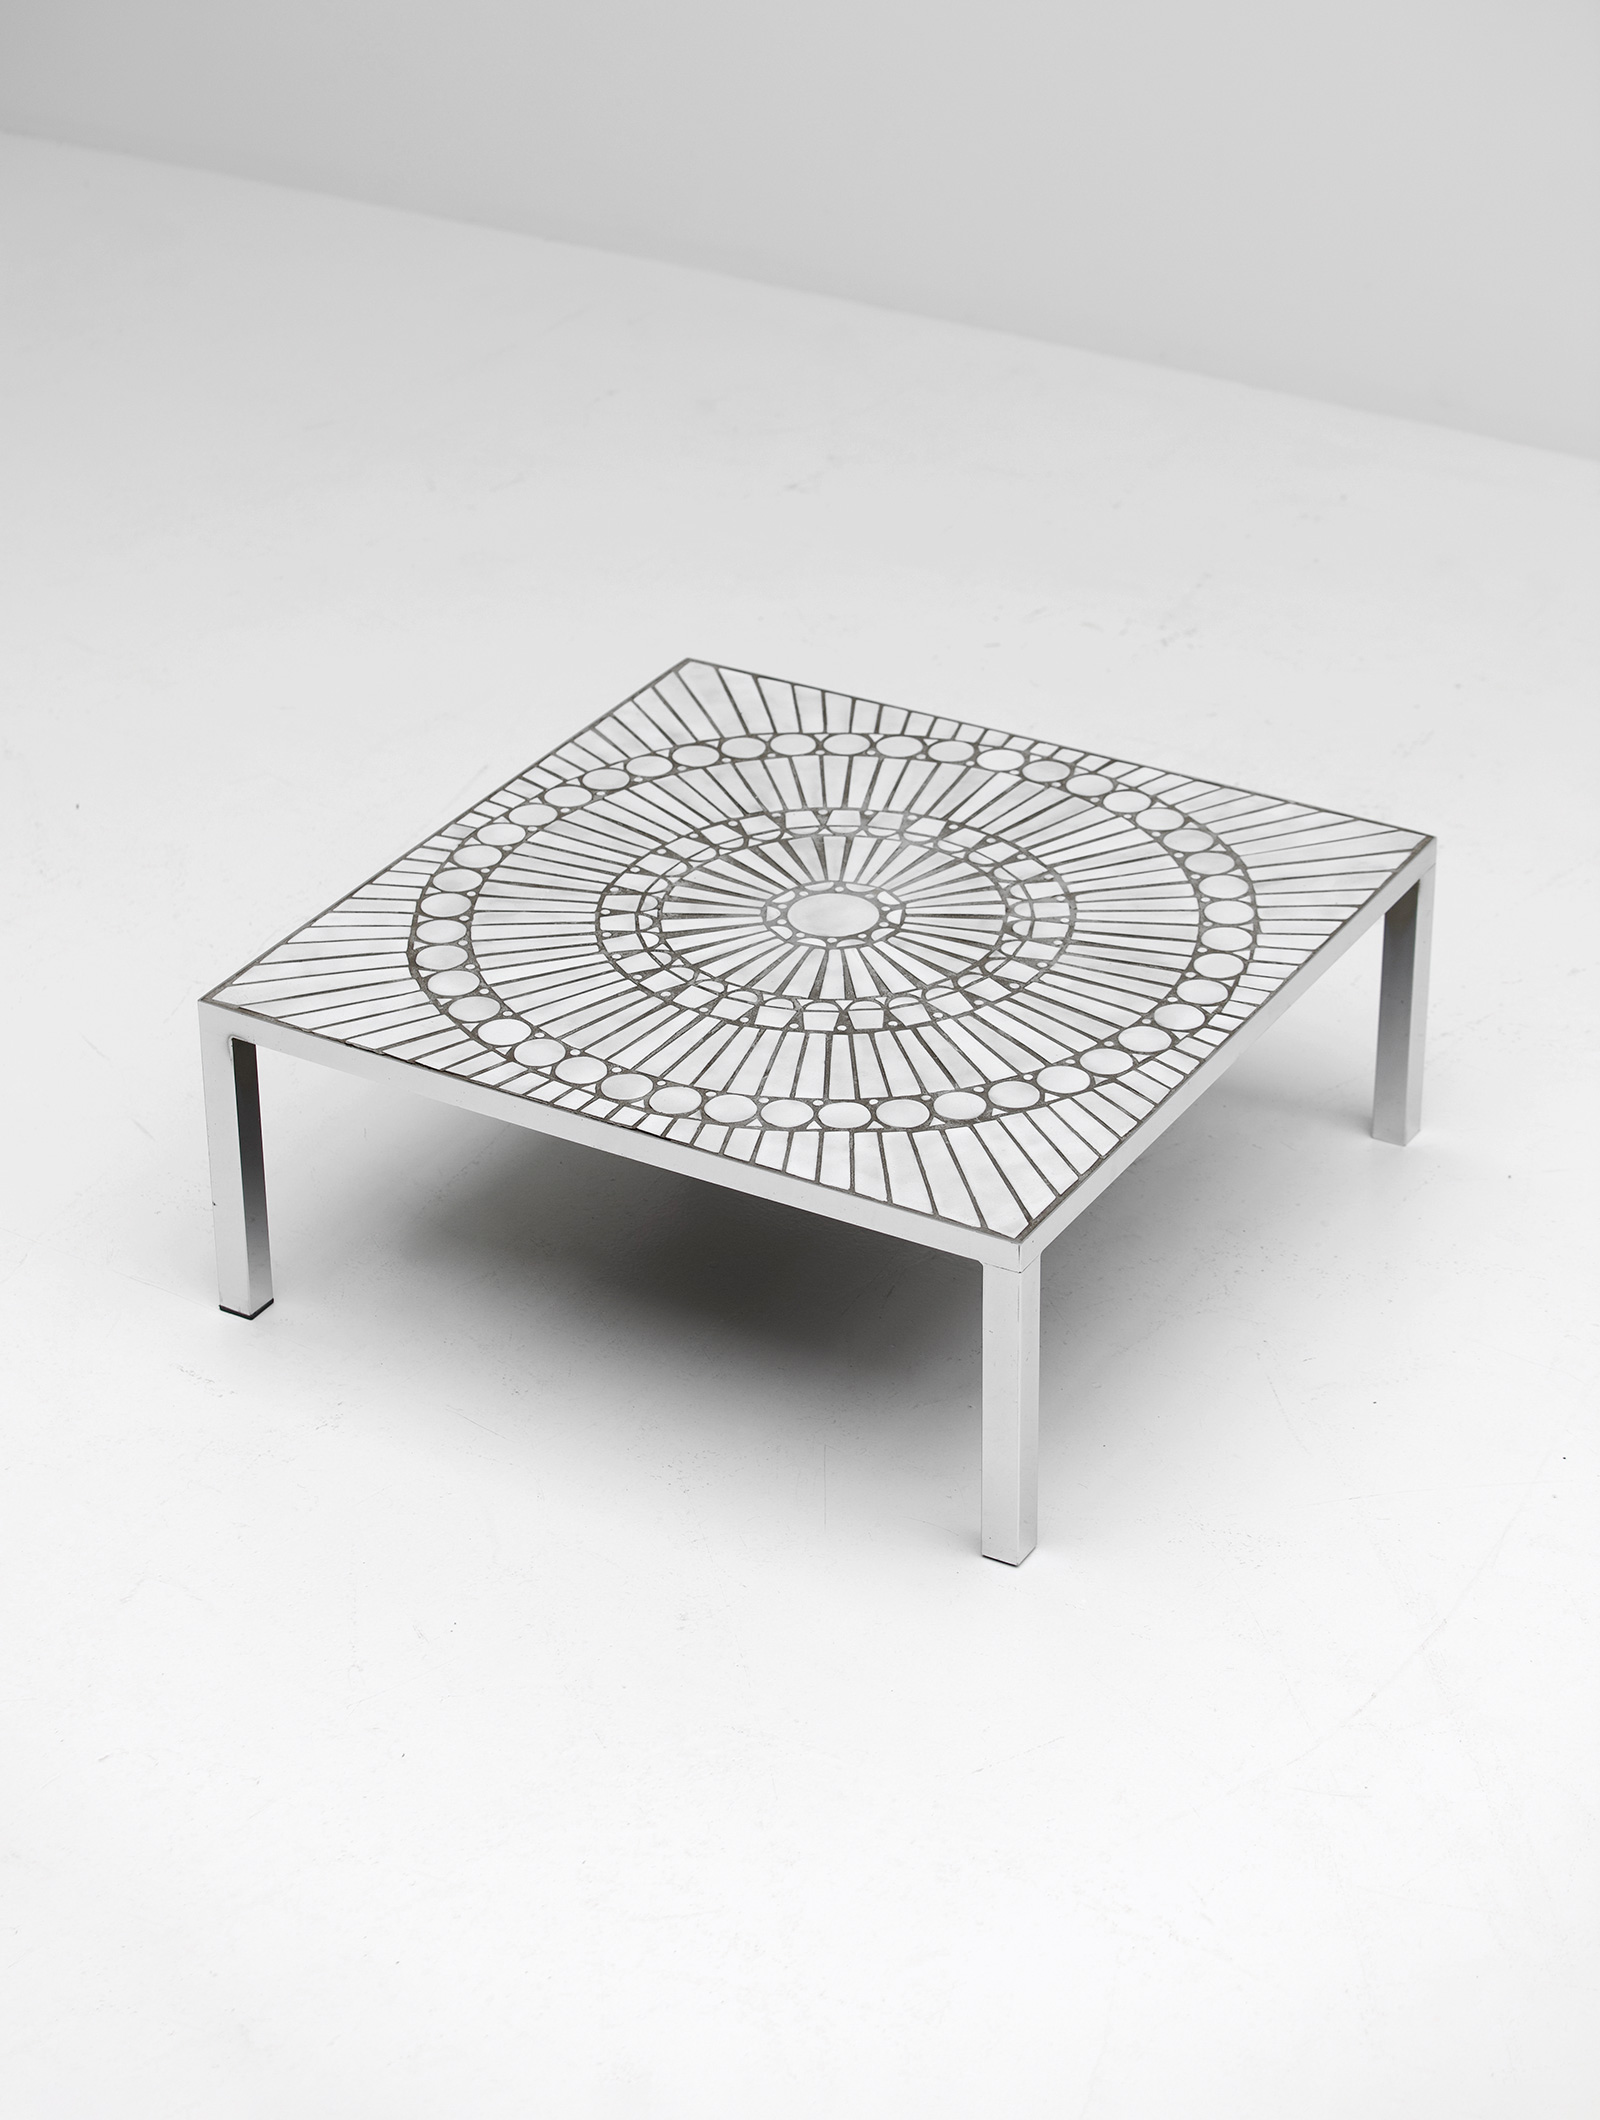 Lutgart De Meyer G58 Ceramic Coffee Table